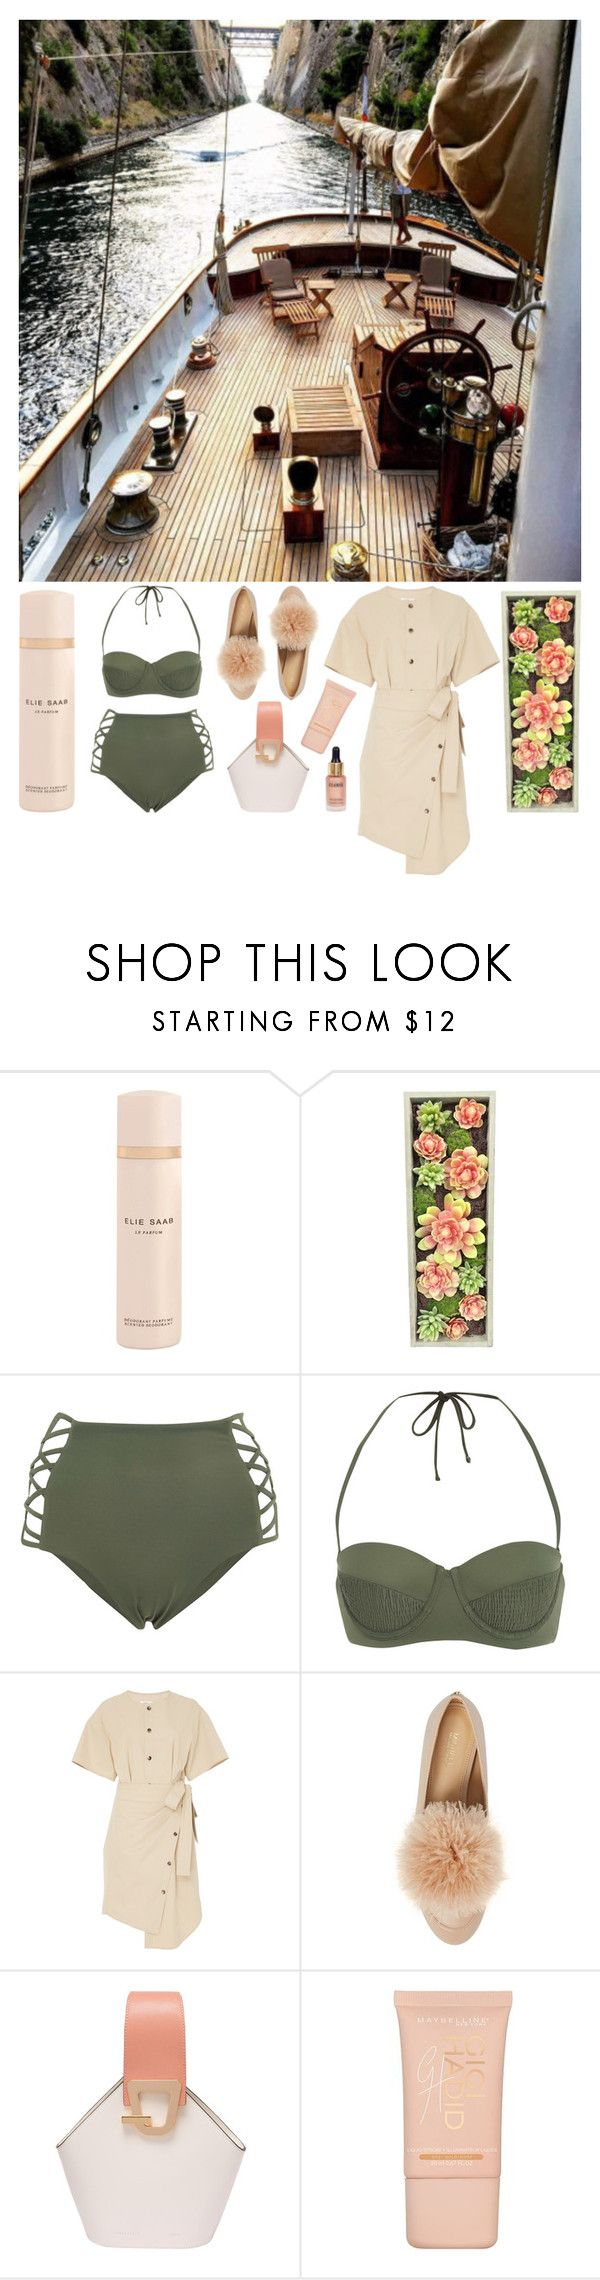 """Sailing"" by cherieaustin on Polyvore featuring Dollhouse, Elie Saab, Gold Eagle, Tori Praver Swimwear, Goen.J, MICHAEL Michael Kors, Danse Lente, Maybelline and Eloise"